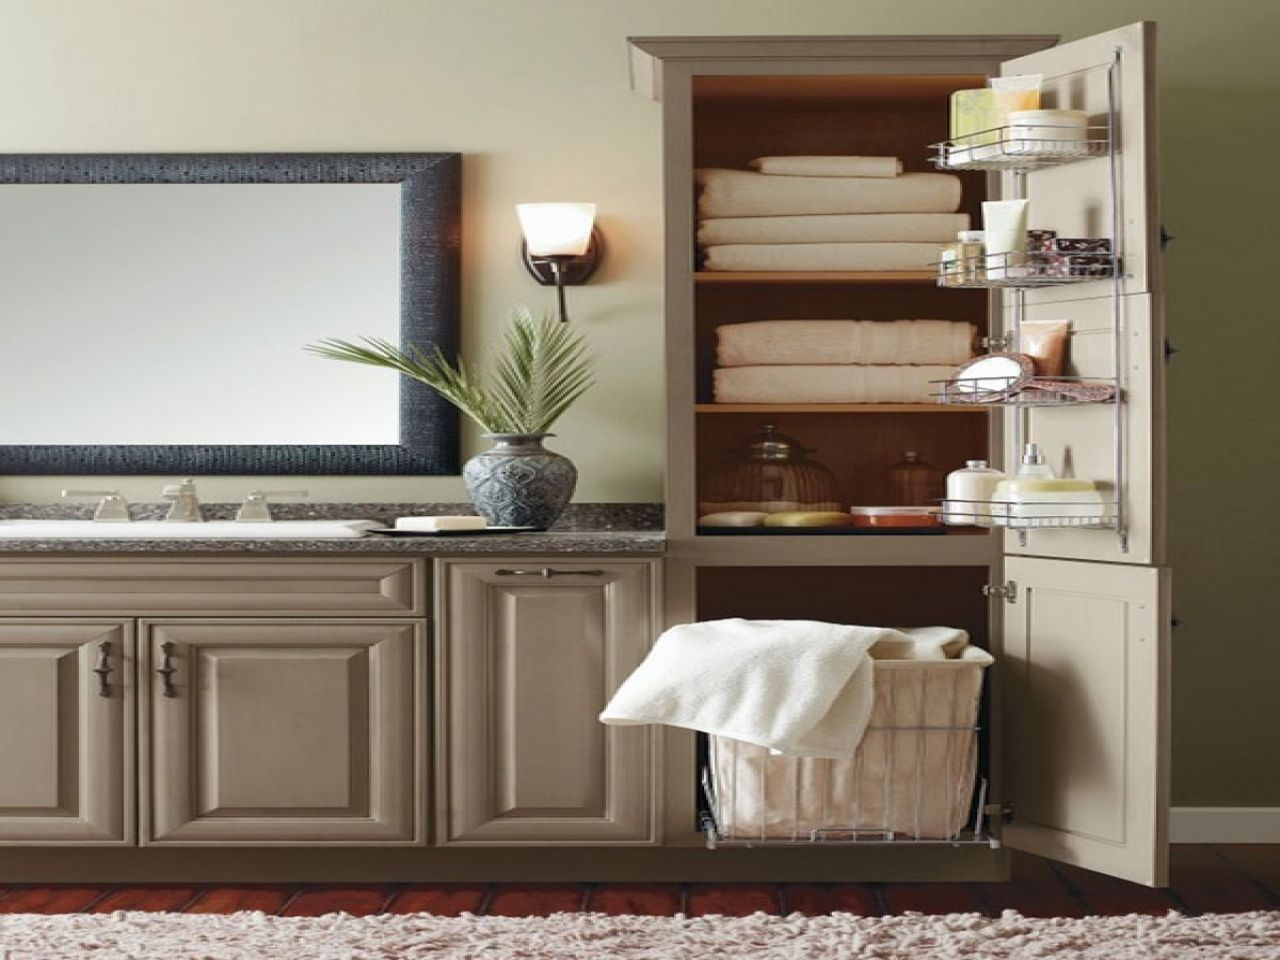 Free Standing Bathroom Storage Cabinets Bathroom Linen Cabinet Glamorous Bathroom Linen Cabinets Decorating Inspiration